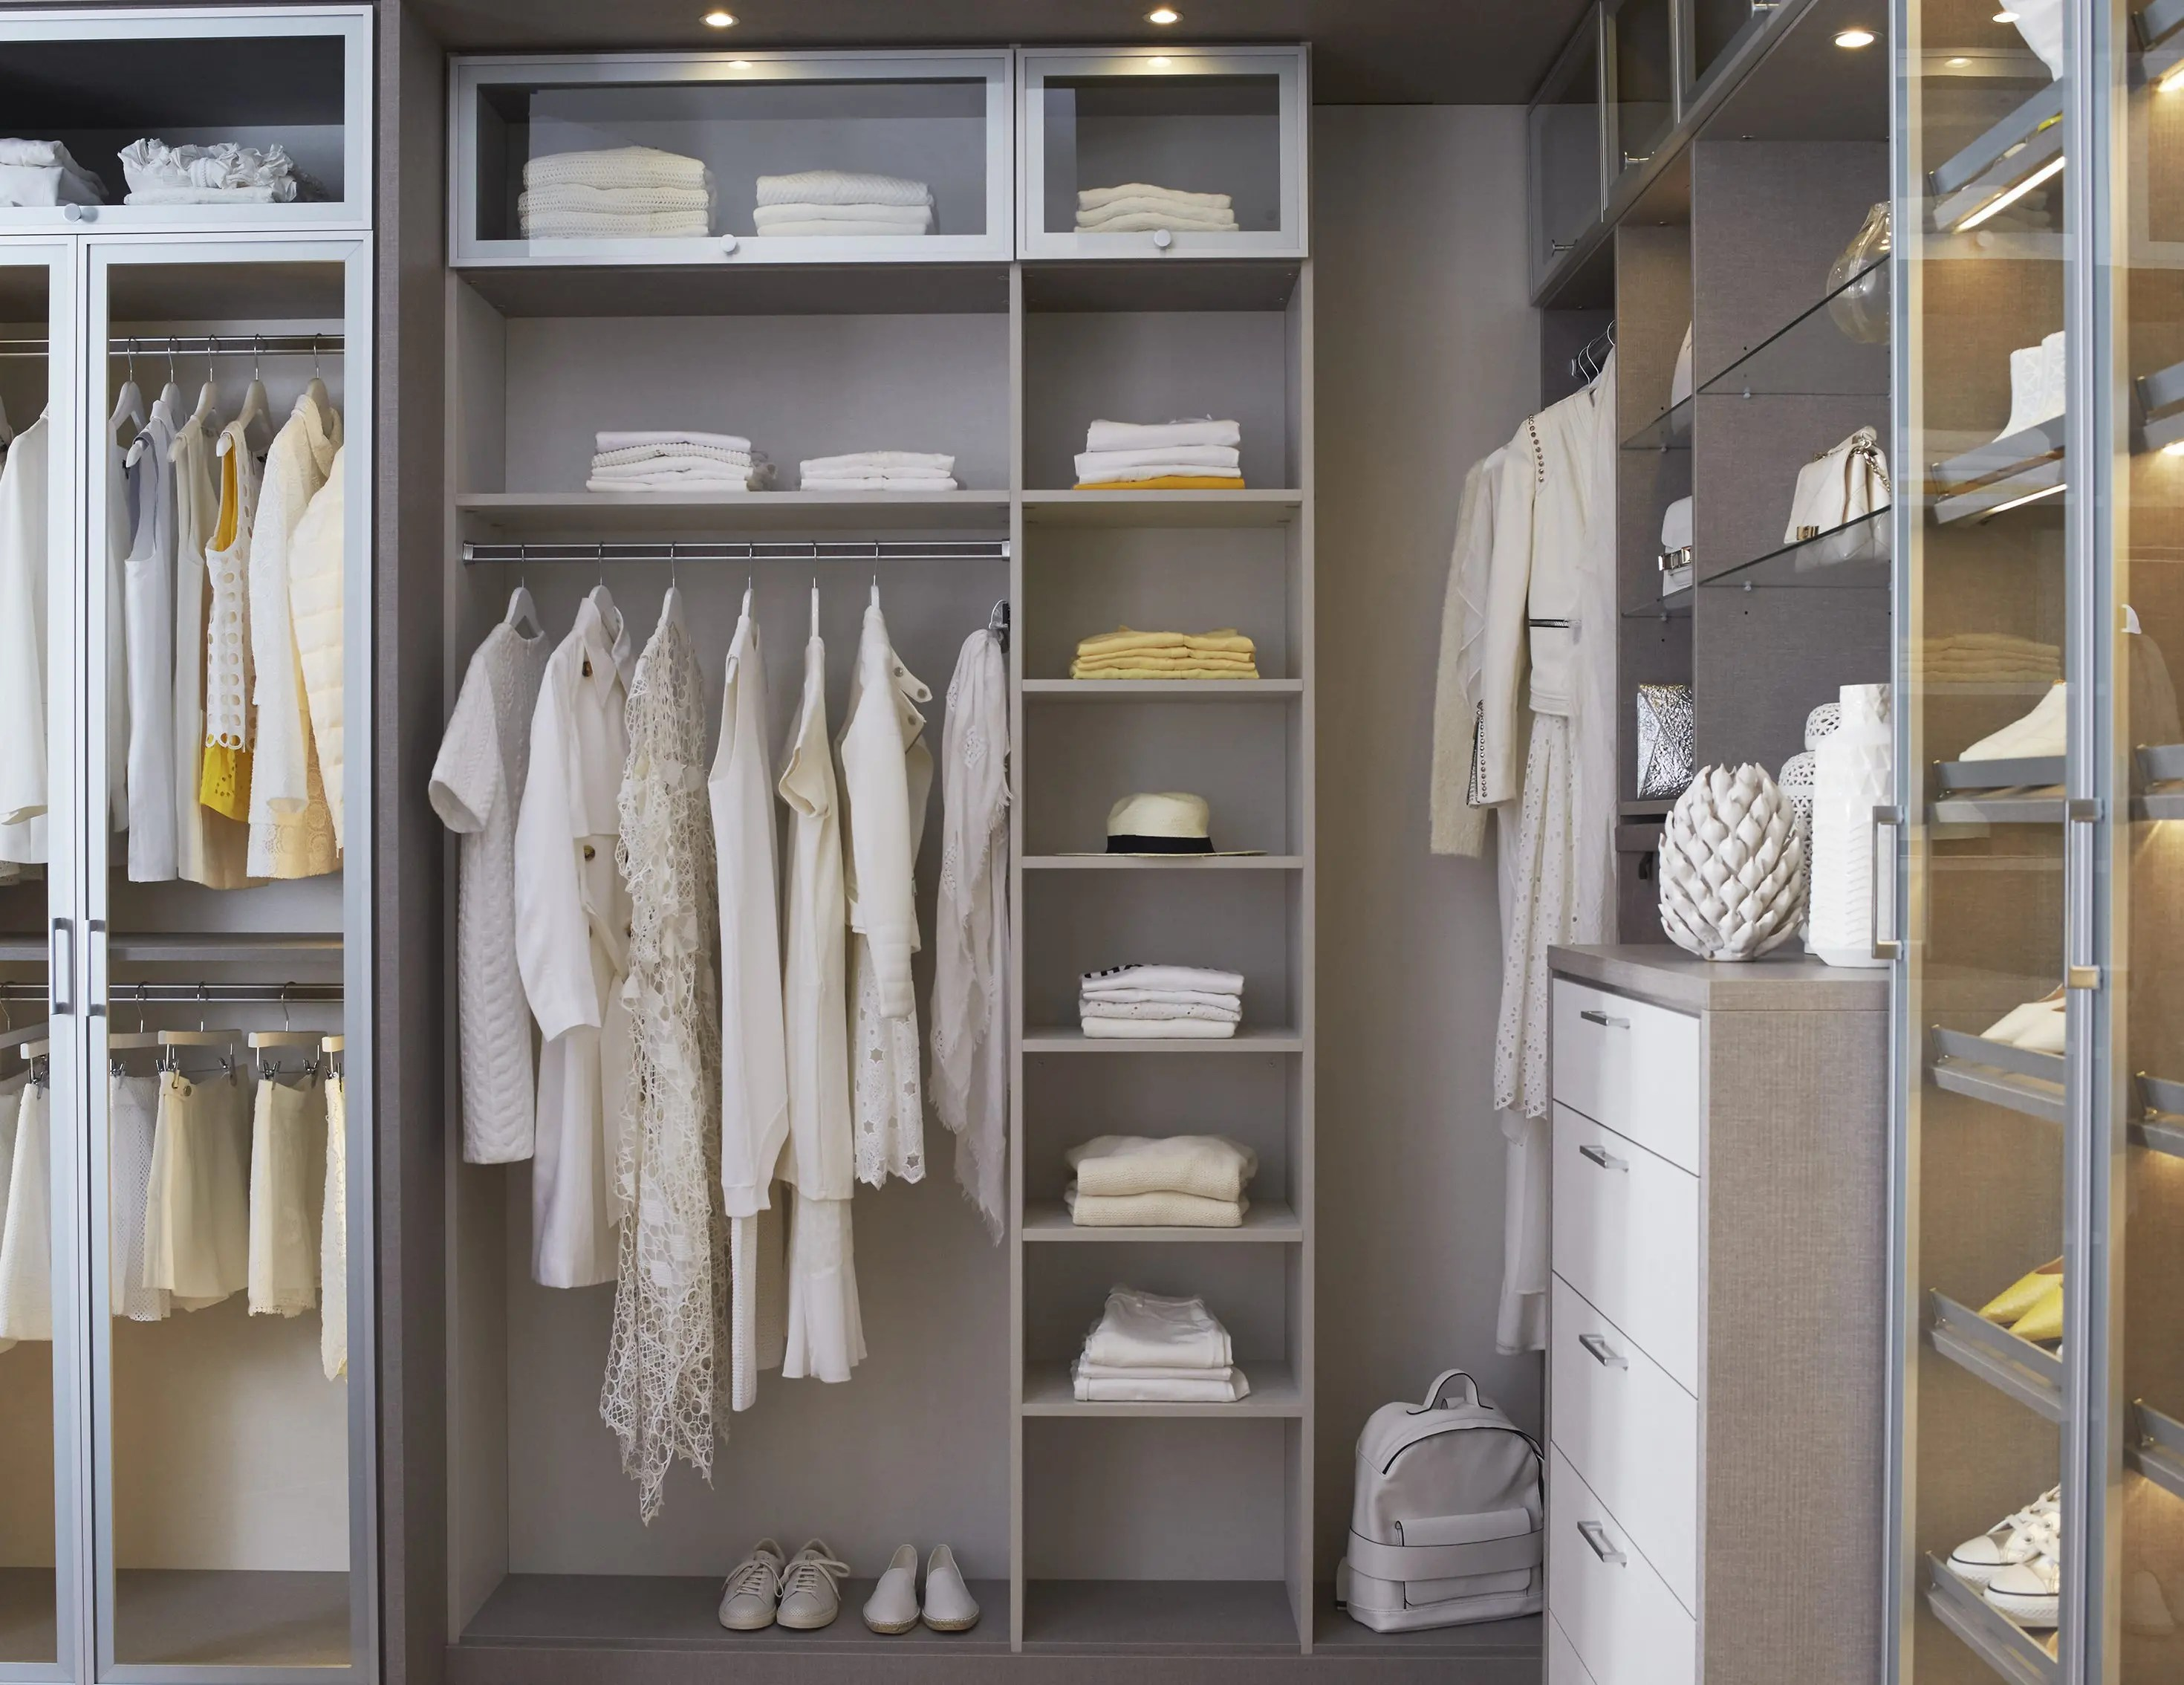 Linen Closet Organizer Systems Closet Organizers In The Tri Cities Area